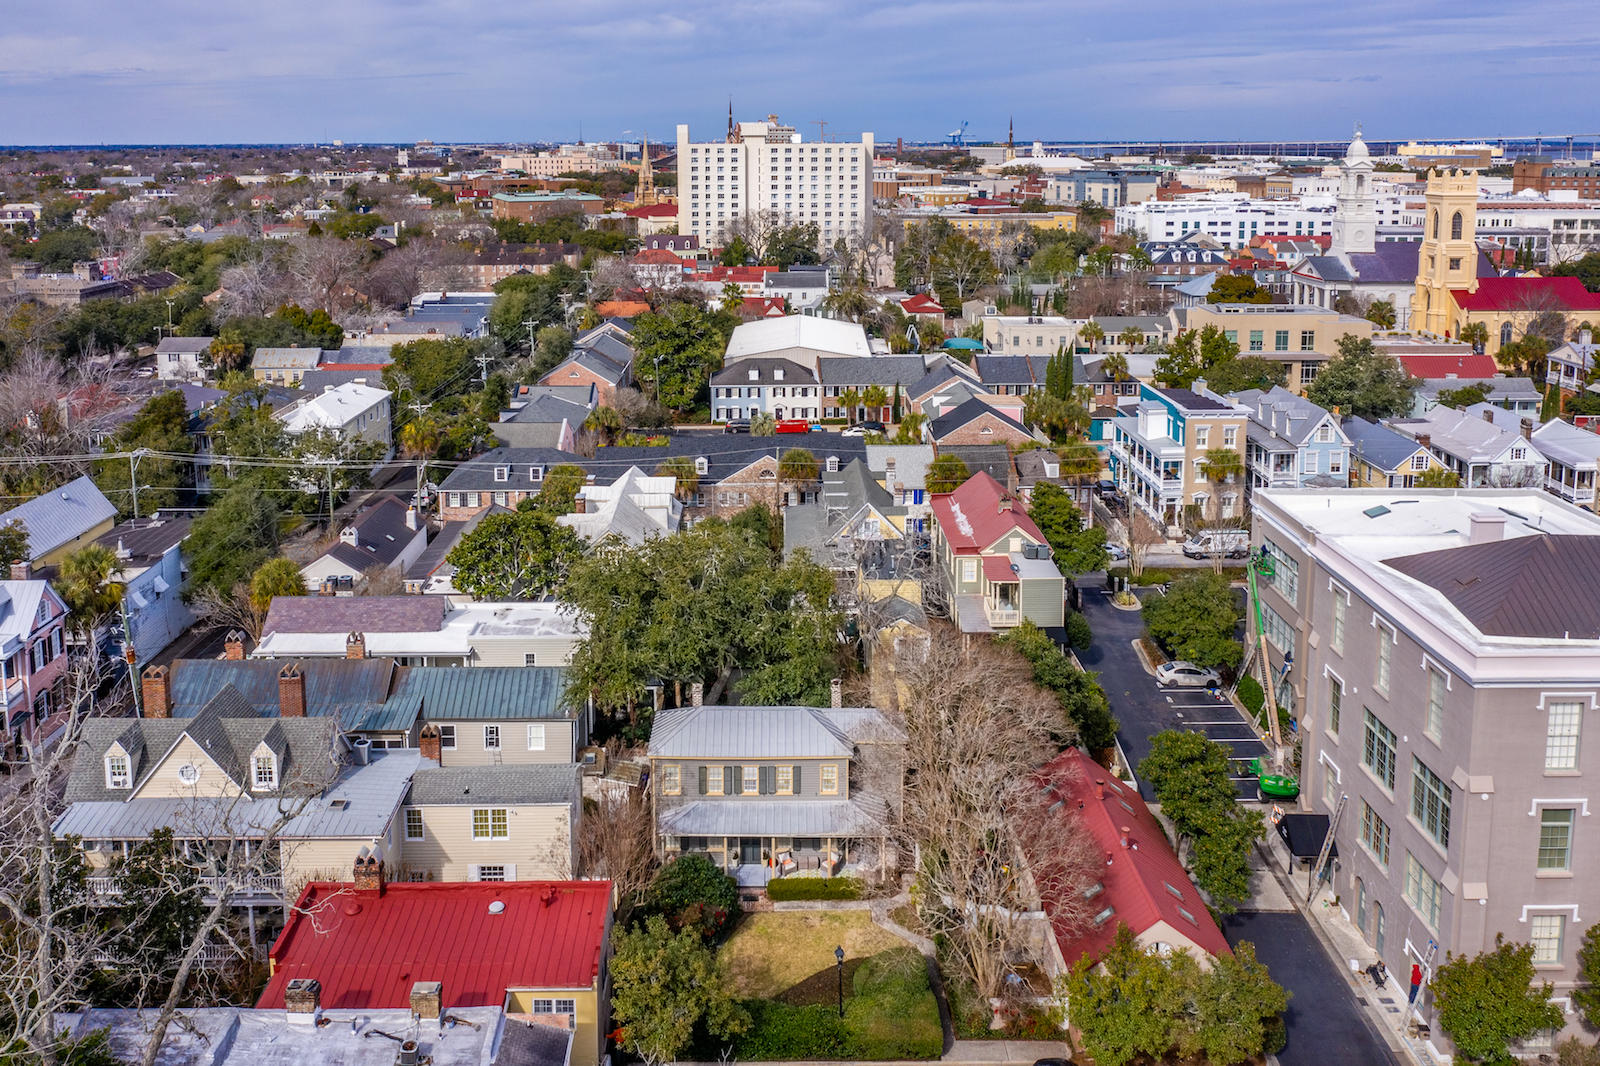 Crafts House Homes For Sale - 125 1/2 Queen, Charleston, SC - 5